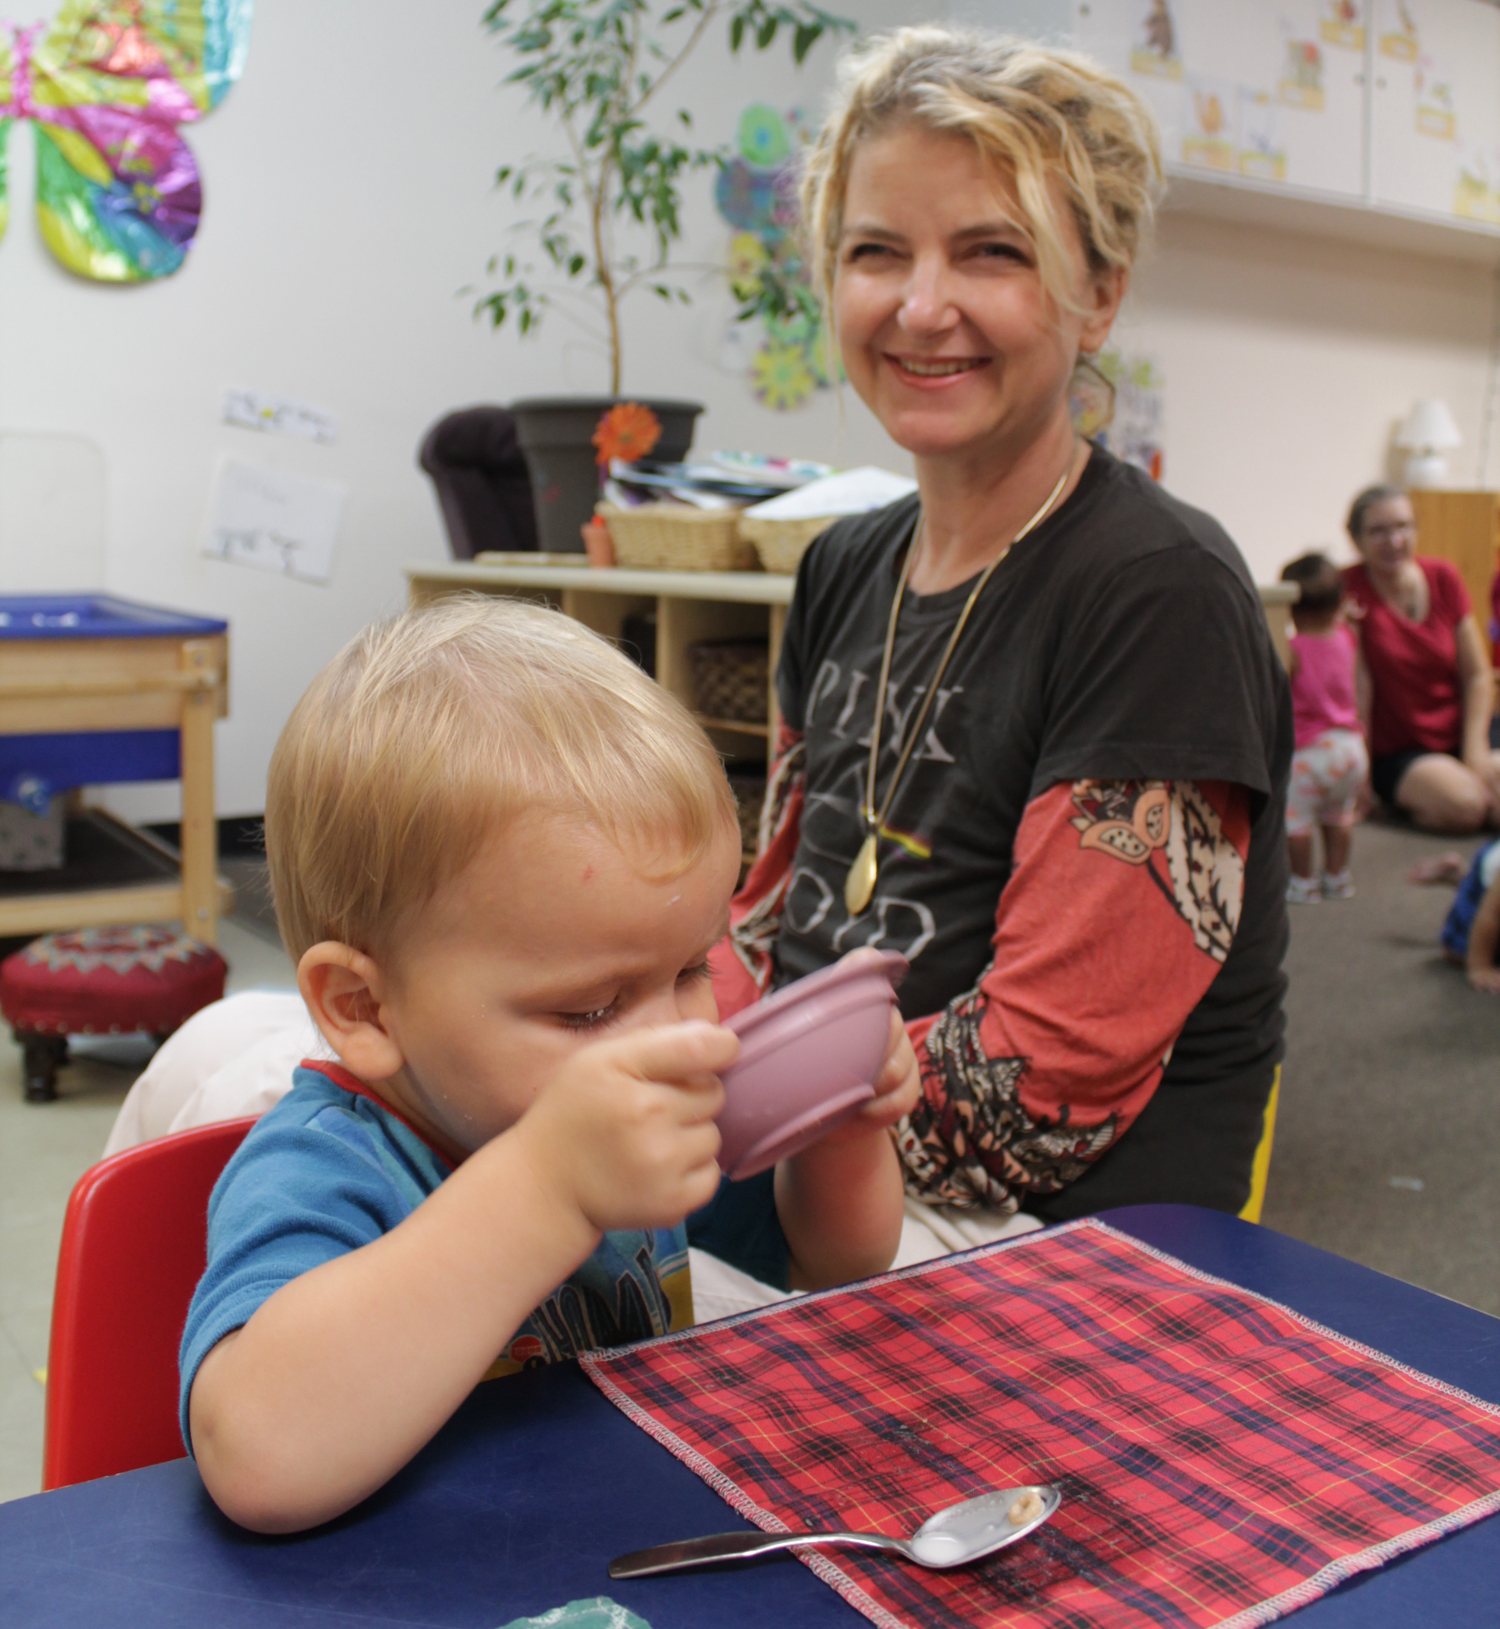 Wolseley Family Place, a United Way donor-supported family resource centre, has programing for prenatal health, parenting skills, and conflict resolution. Signe Knutson, a single mom with three kids, uses the respite daycare, where Peter can get a meal and play with other kids